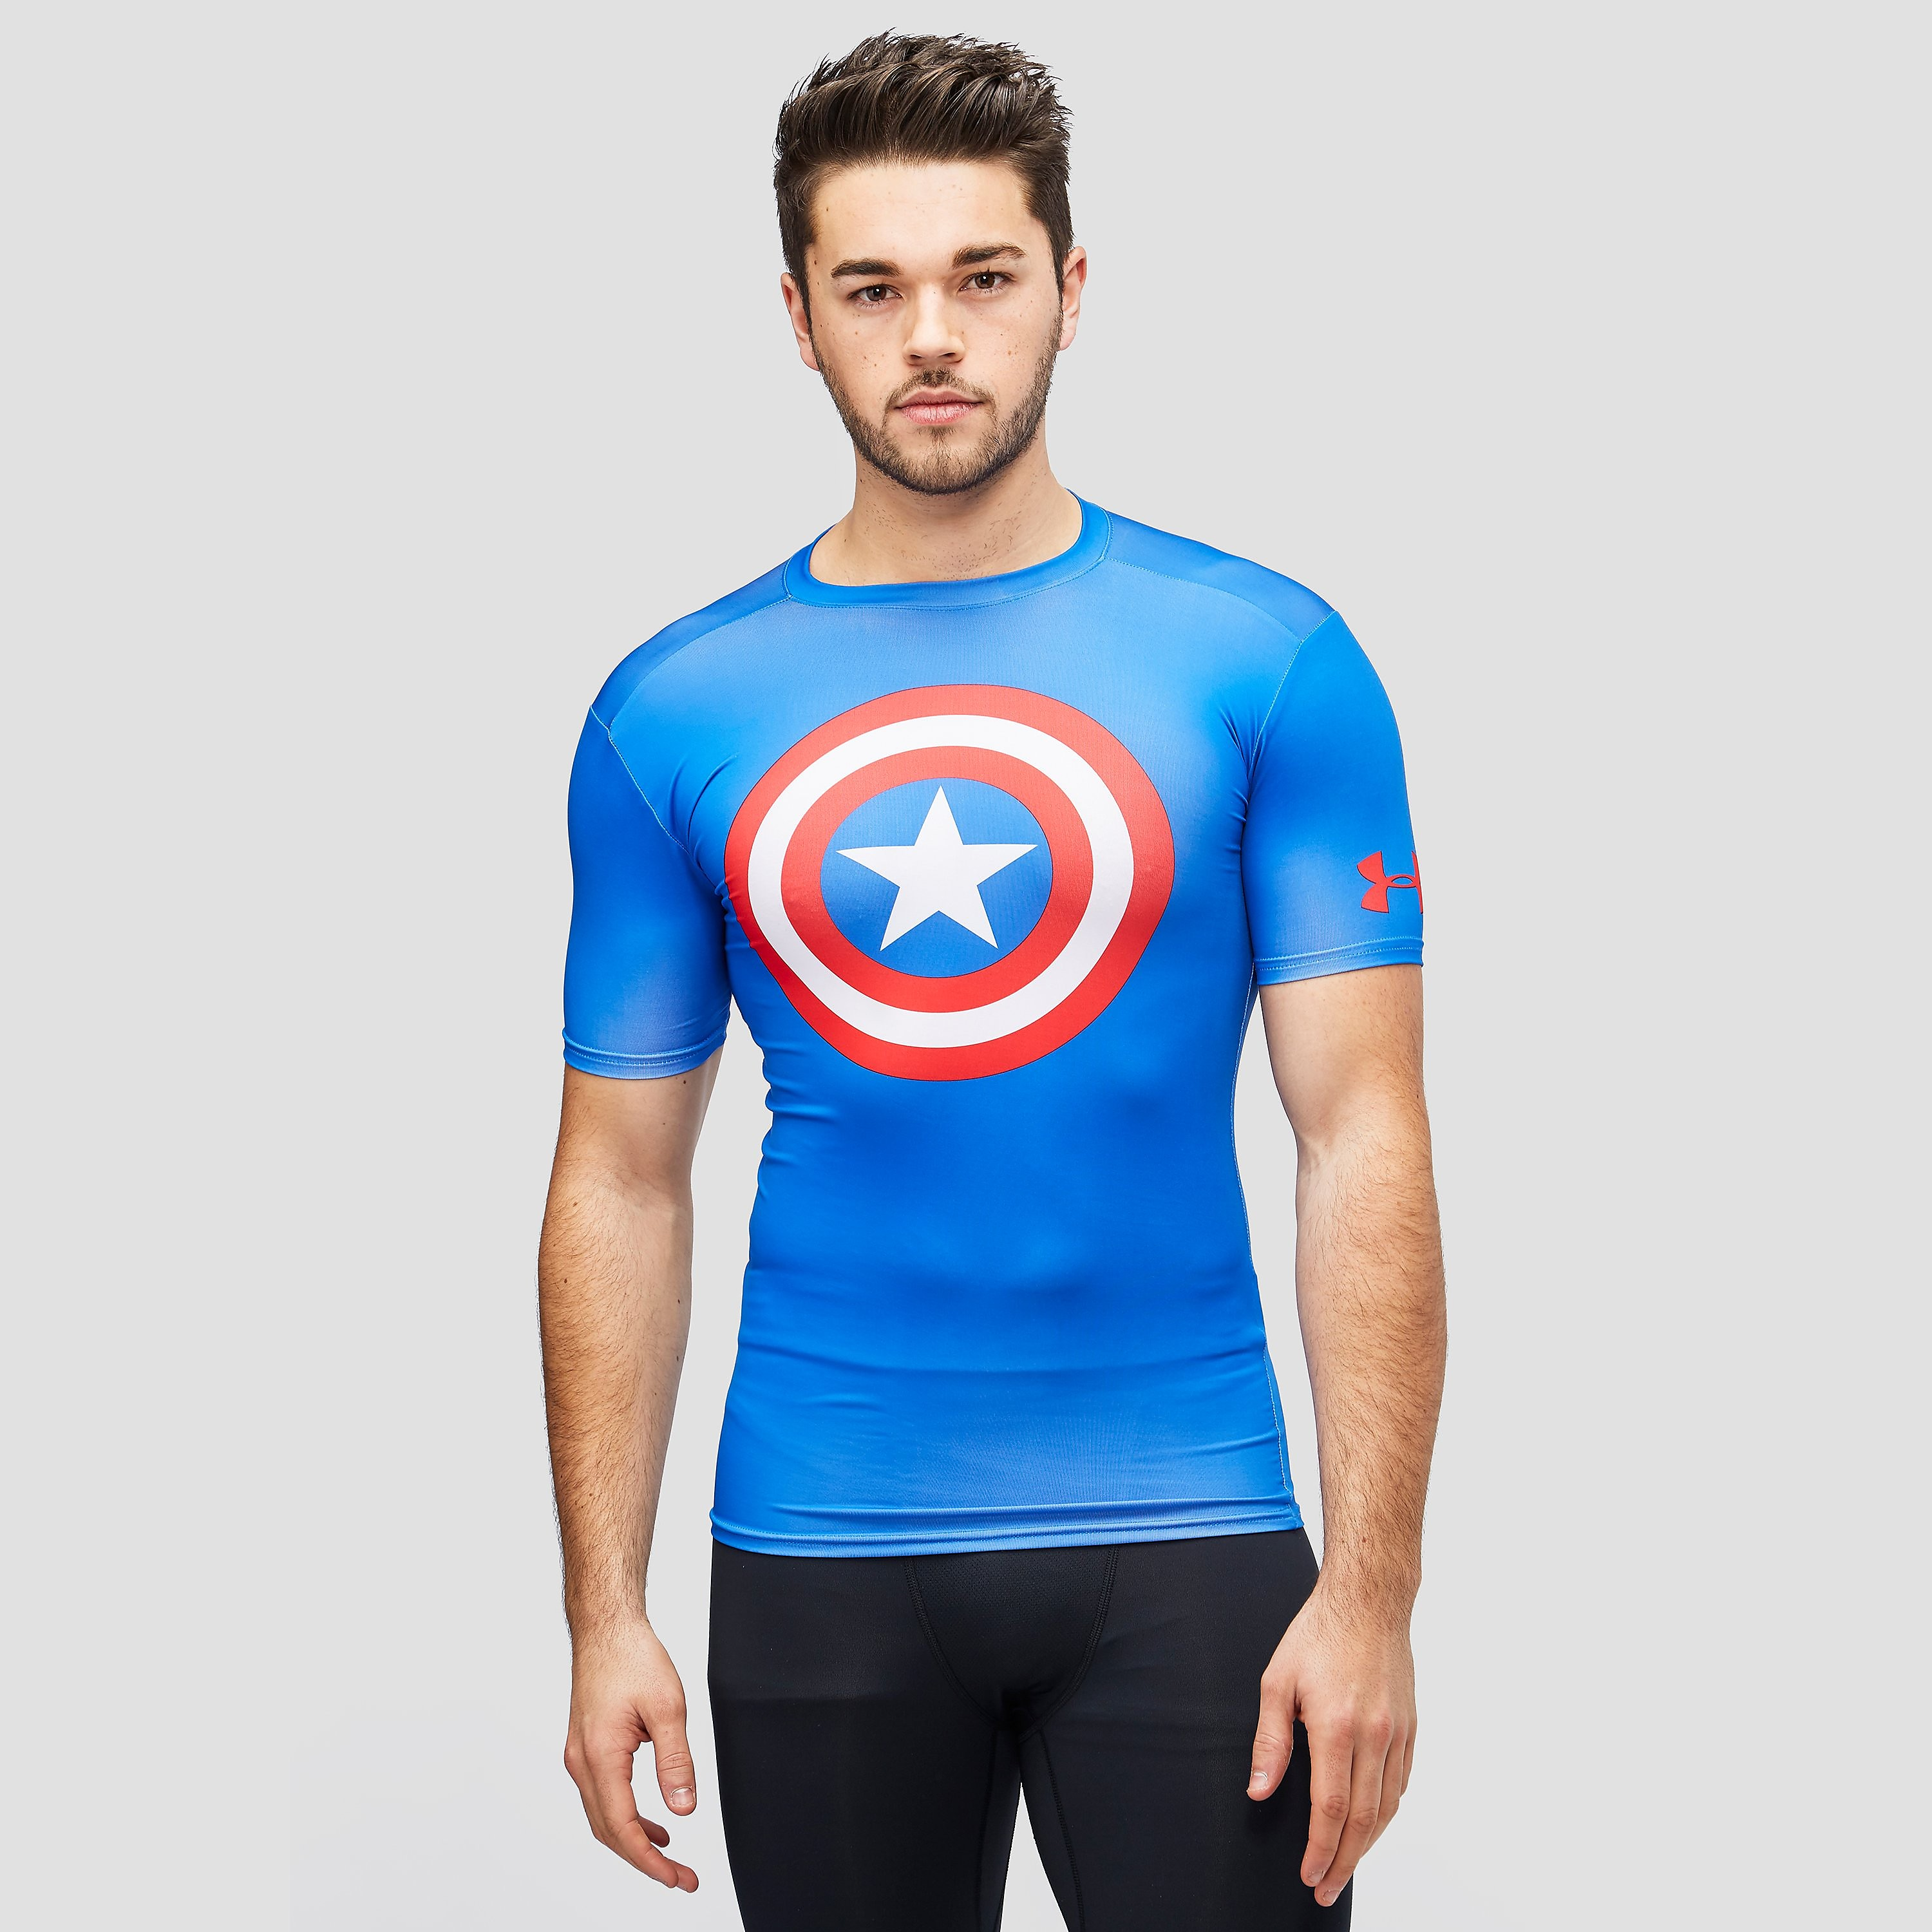 Under Armour Alter Ego Captain America Compression Short Sleeve Men's T-Shirt.